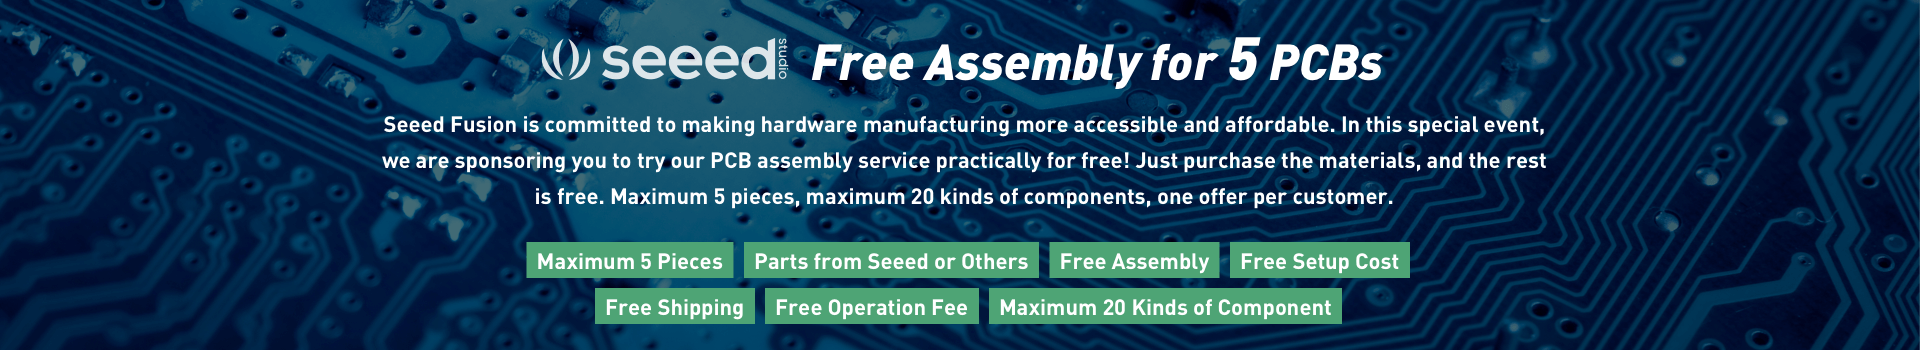 free-assembly-for-5-pcbs